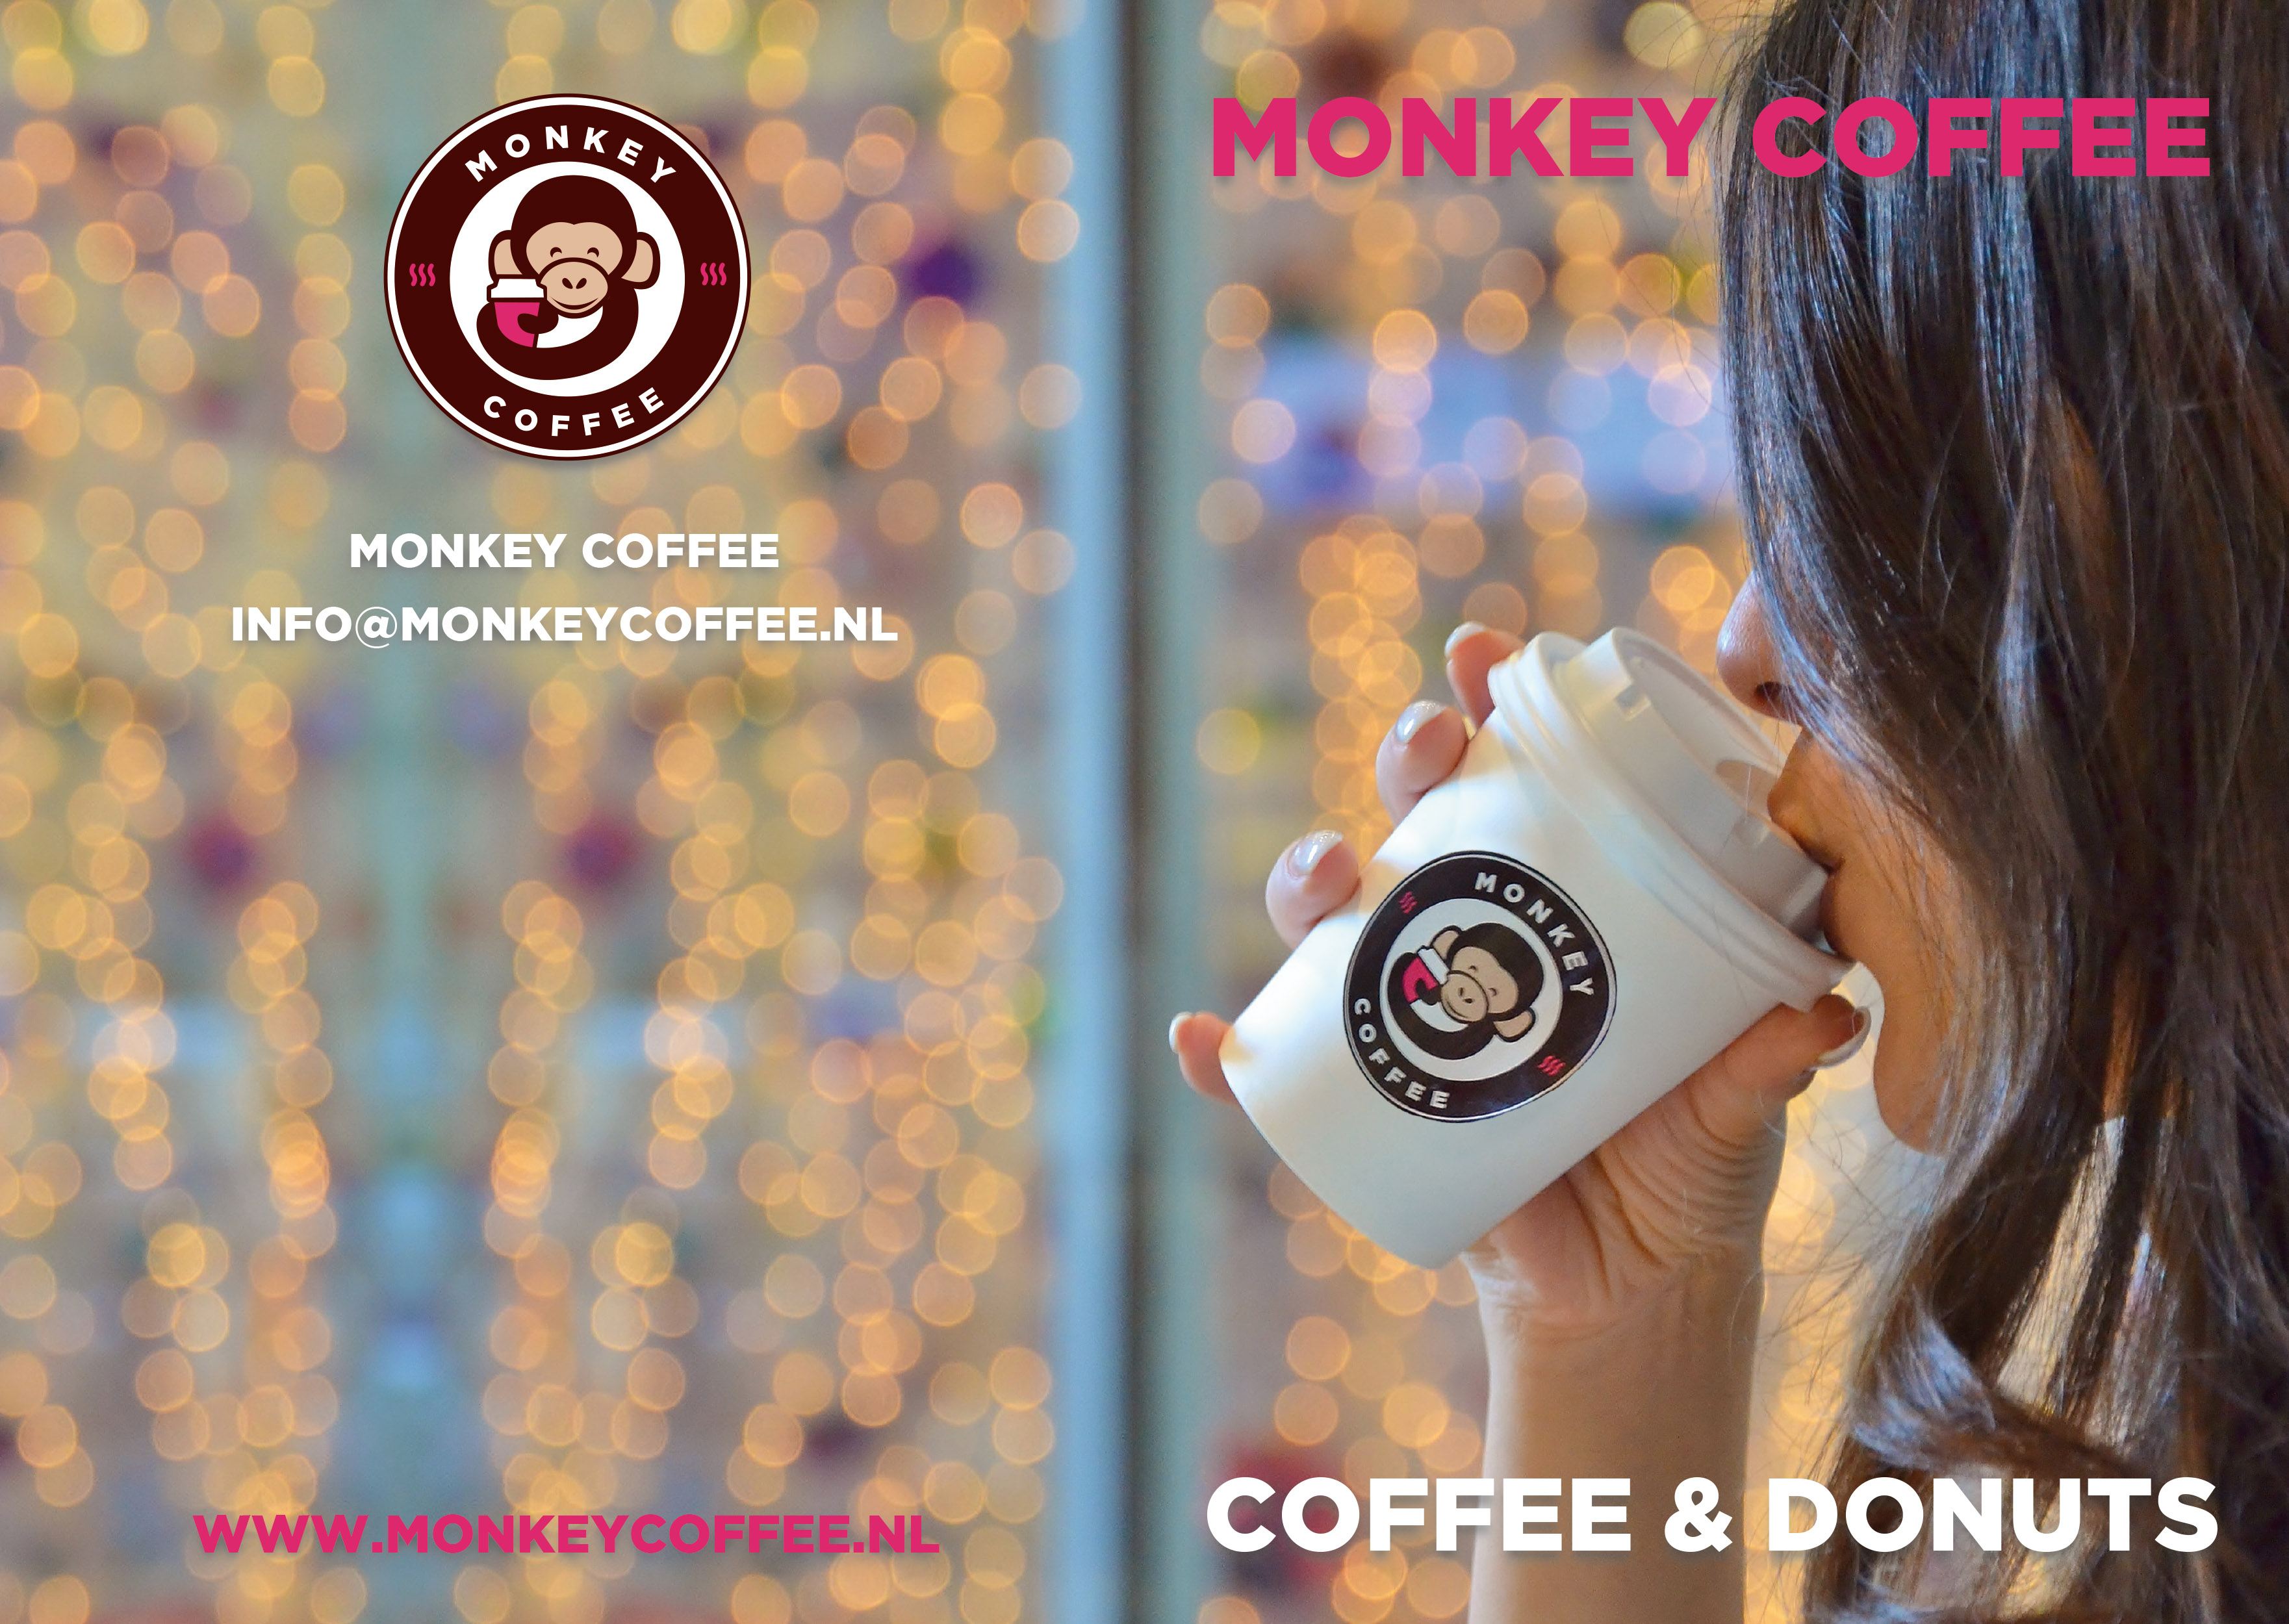 Monkey Coffee Menukaart voorkant